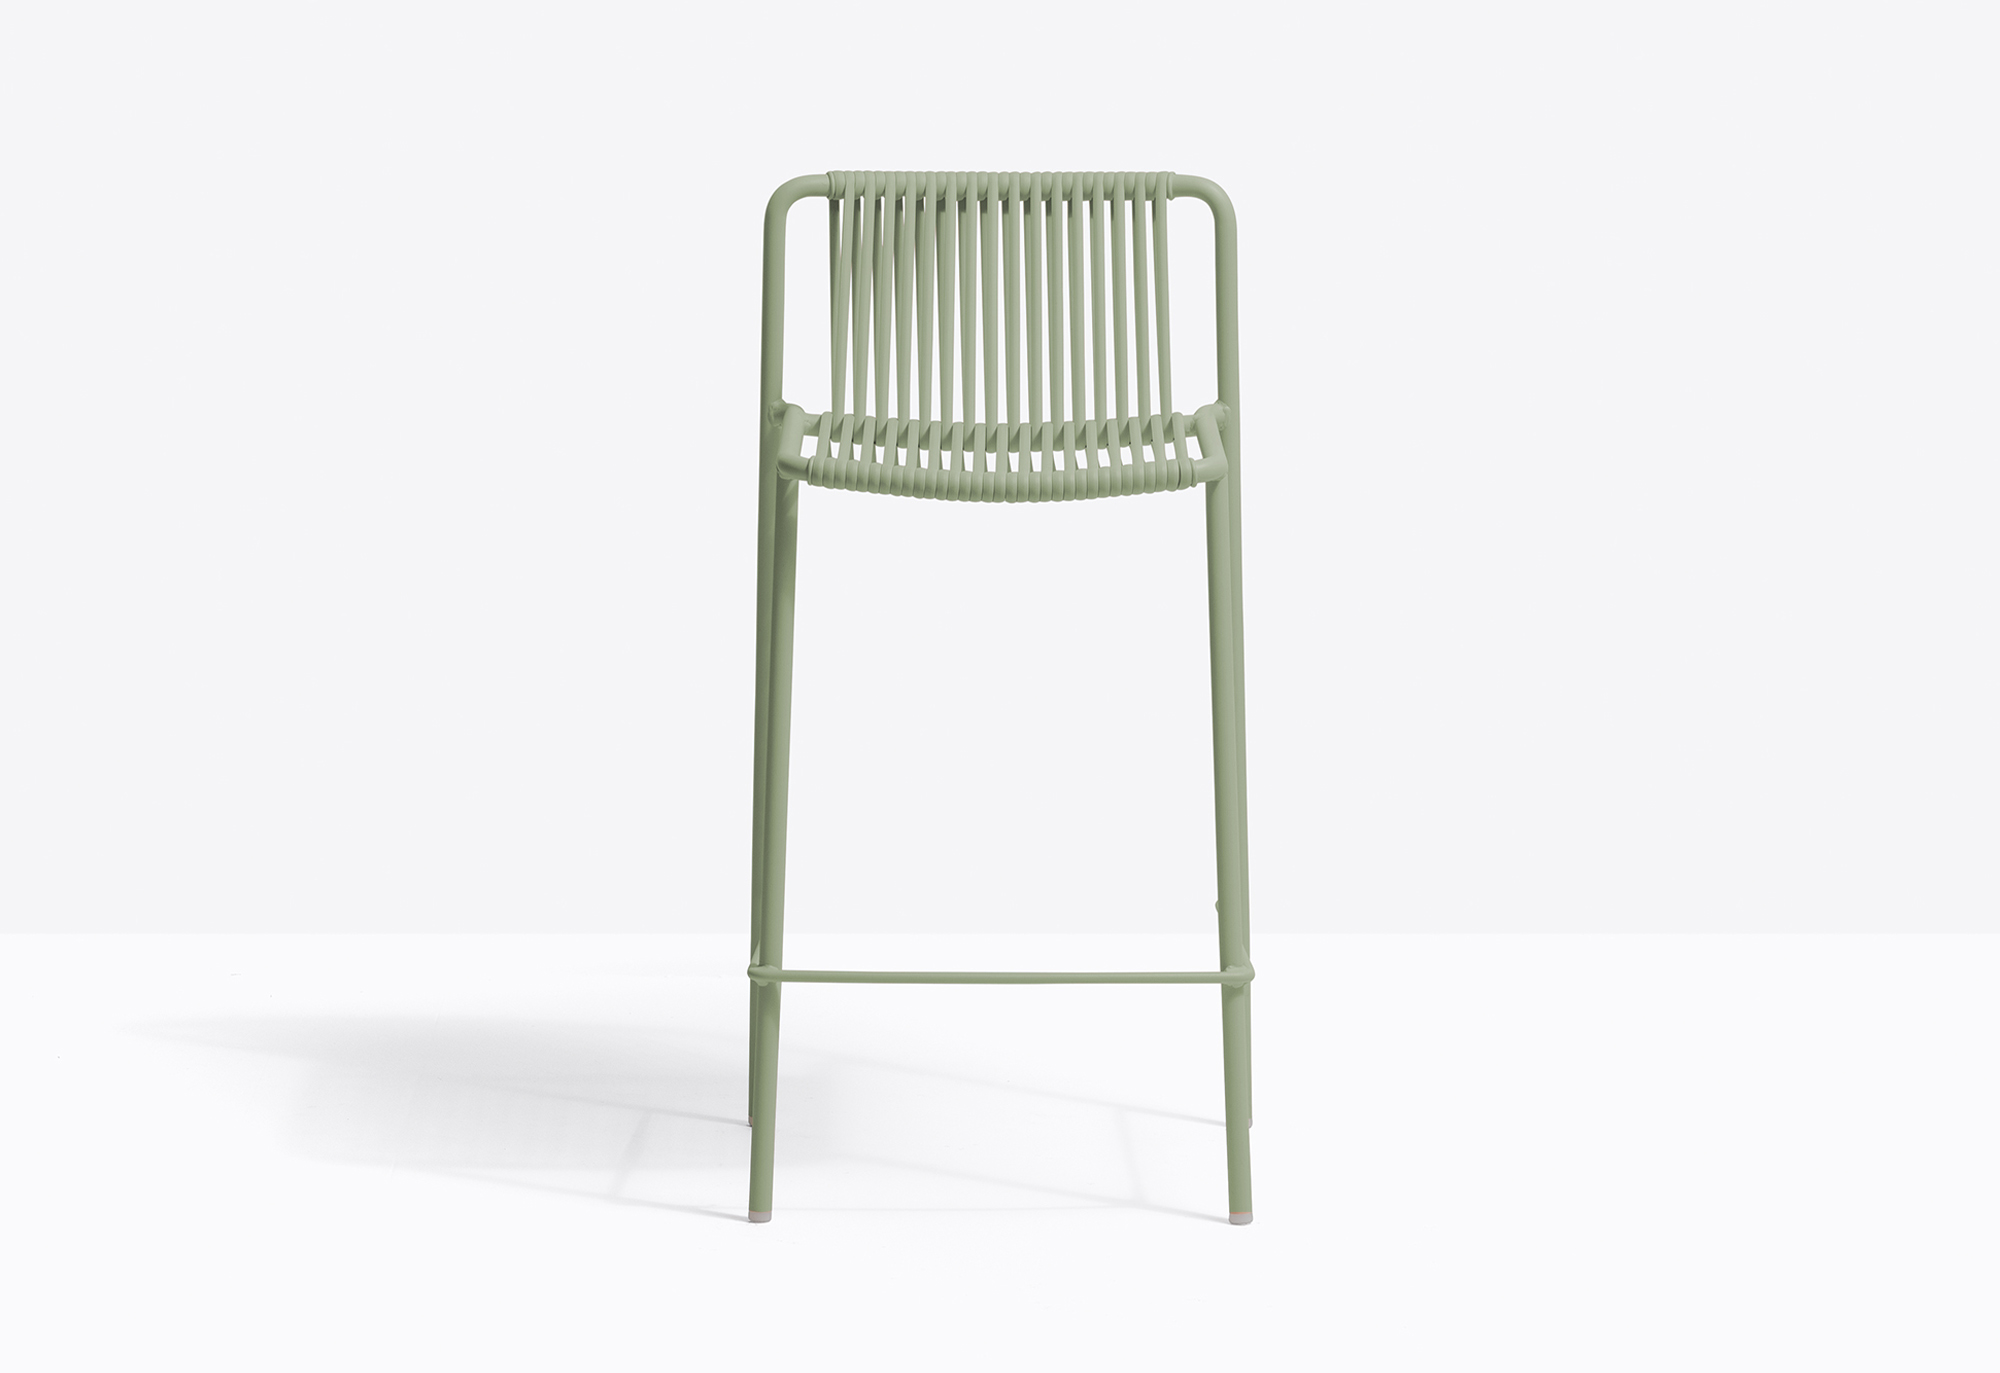 Tribeca Stool - Tribeca takes us back in time with a modern reinterpretation of classic Sixties patio chairs made from steel and woven material. Stool with Ø2cm tube structure powder coated for outdoor use, backrest and seat in woven extruded PVC with a nylon core. Specifically designed for outdoor use. Stackable. Seat height 67,5 cm.   | Matter of Stuff